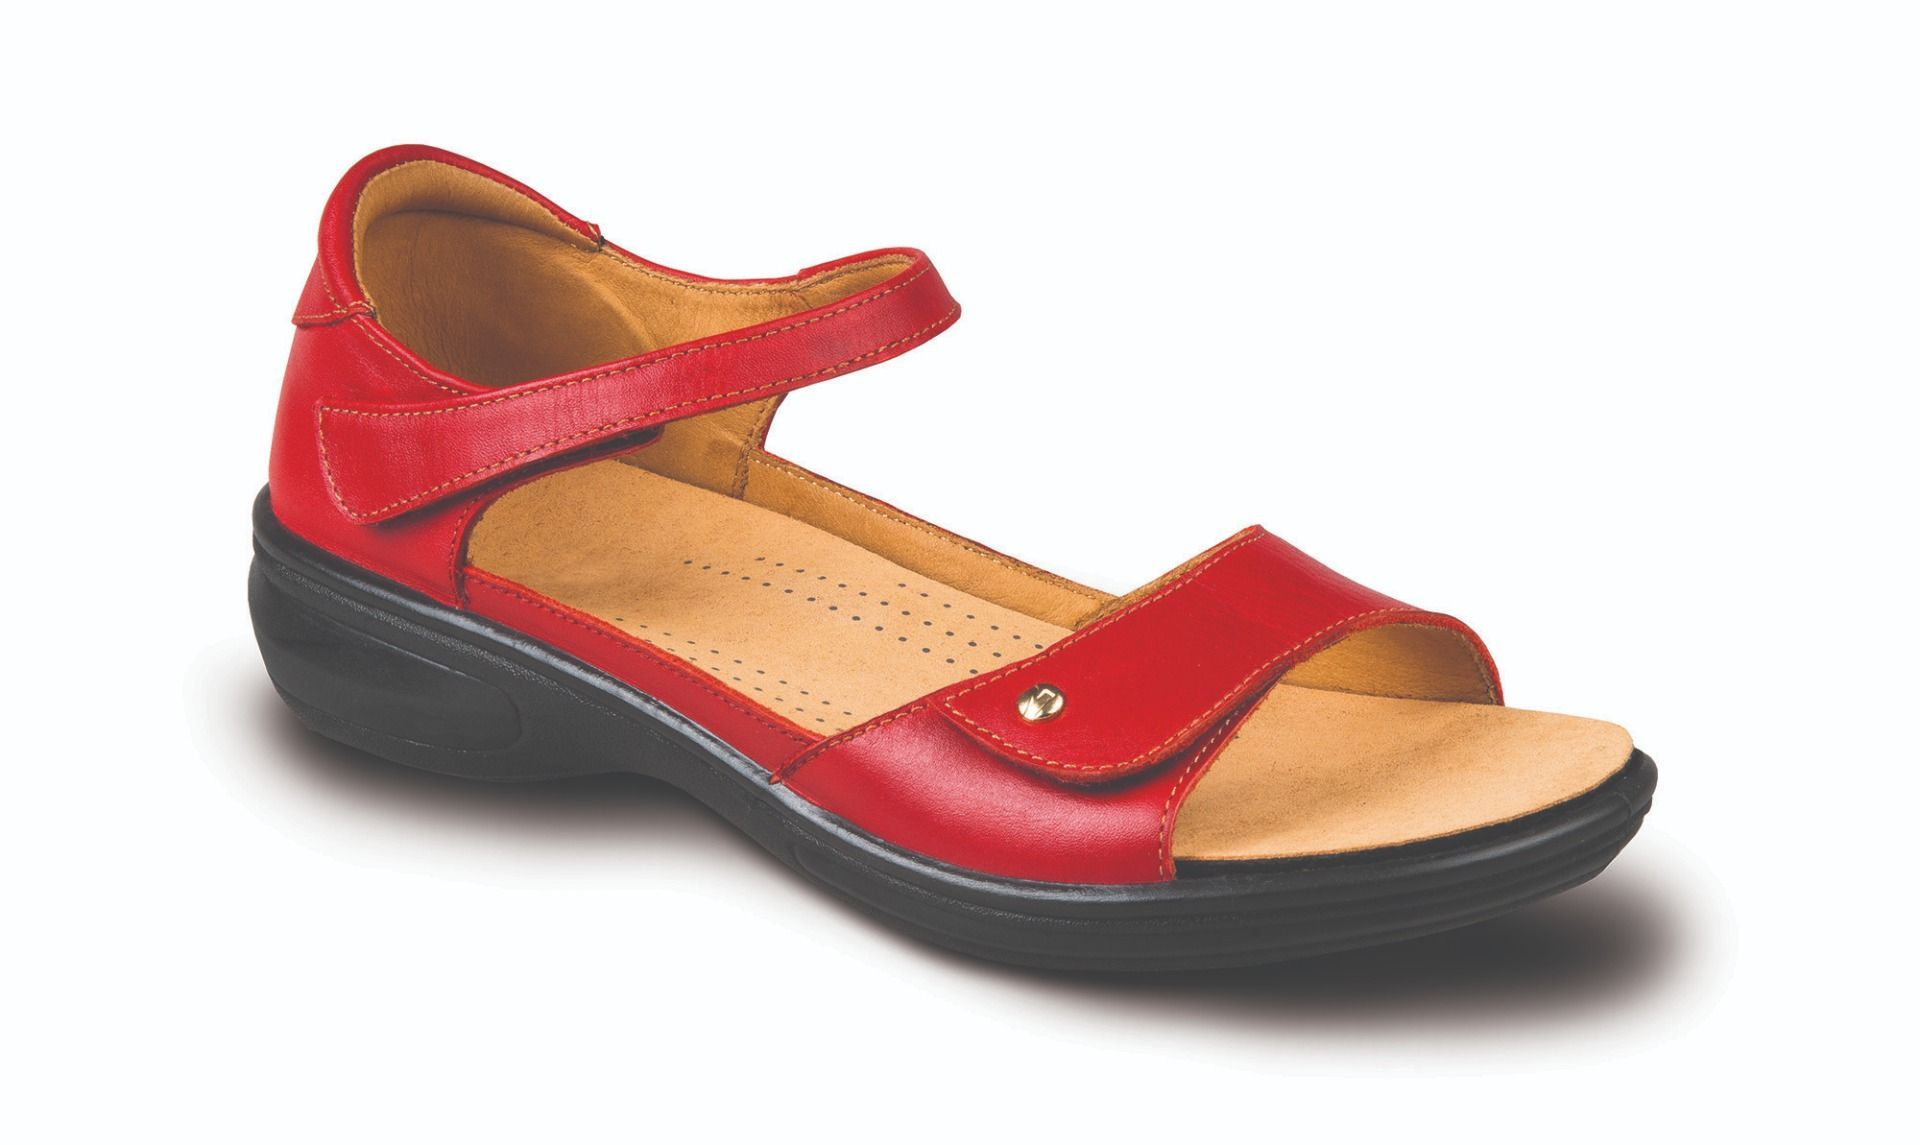 9d17777cab Bali Closed Heel Sandal with removable insole for your custom made orthotics  (by Revere Shoes) available at Hills Podiatry Centre 21 Hezlett Rd. North  ...